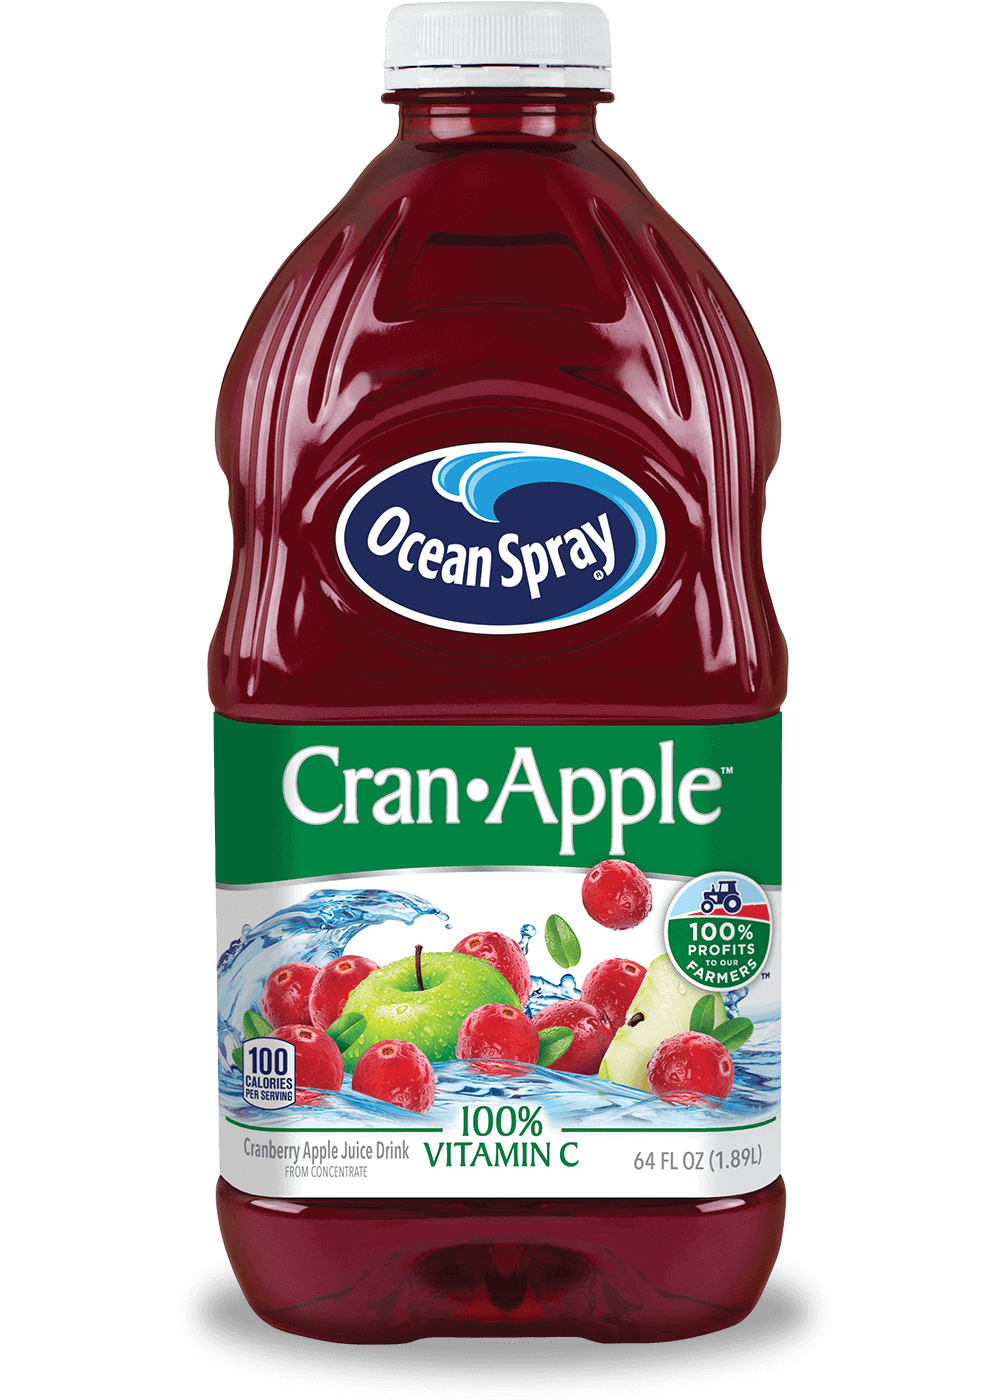 Cran•Apple™ Cranberry Apple Juice Drink